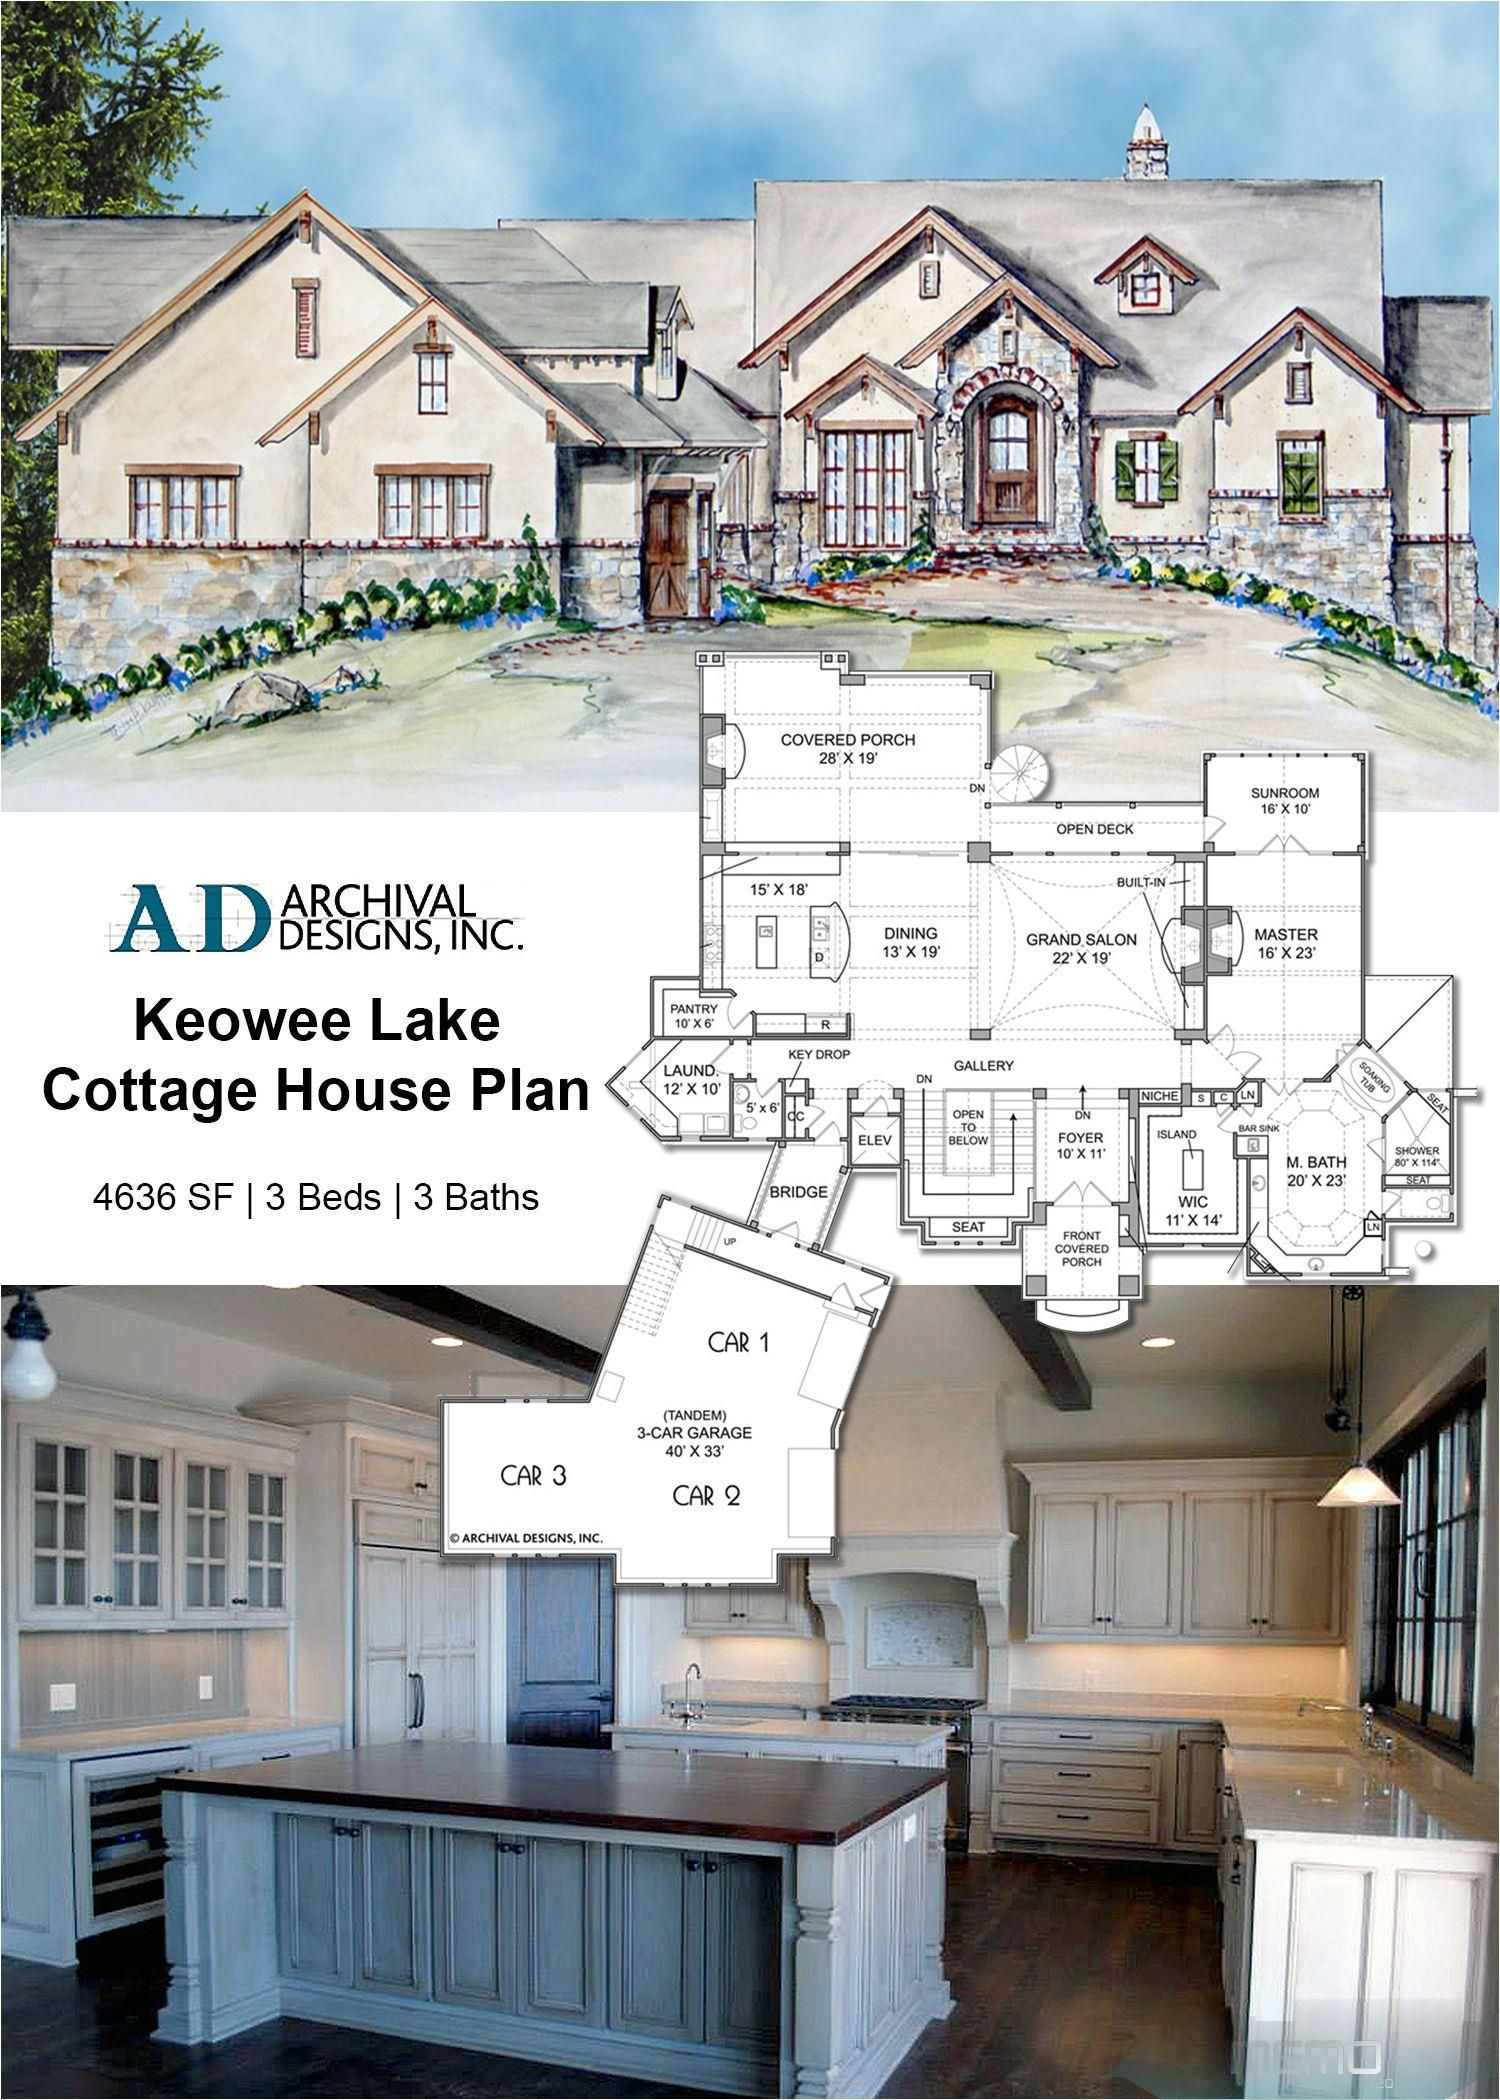 Jun 25 2019 With Old World Natural Stone Accents Rustic Stucco And Wood Trim This Home Design Evokes A Sty Cottage House Plans Lake House Plans House Plans